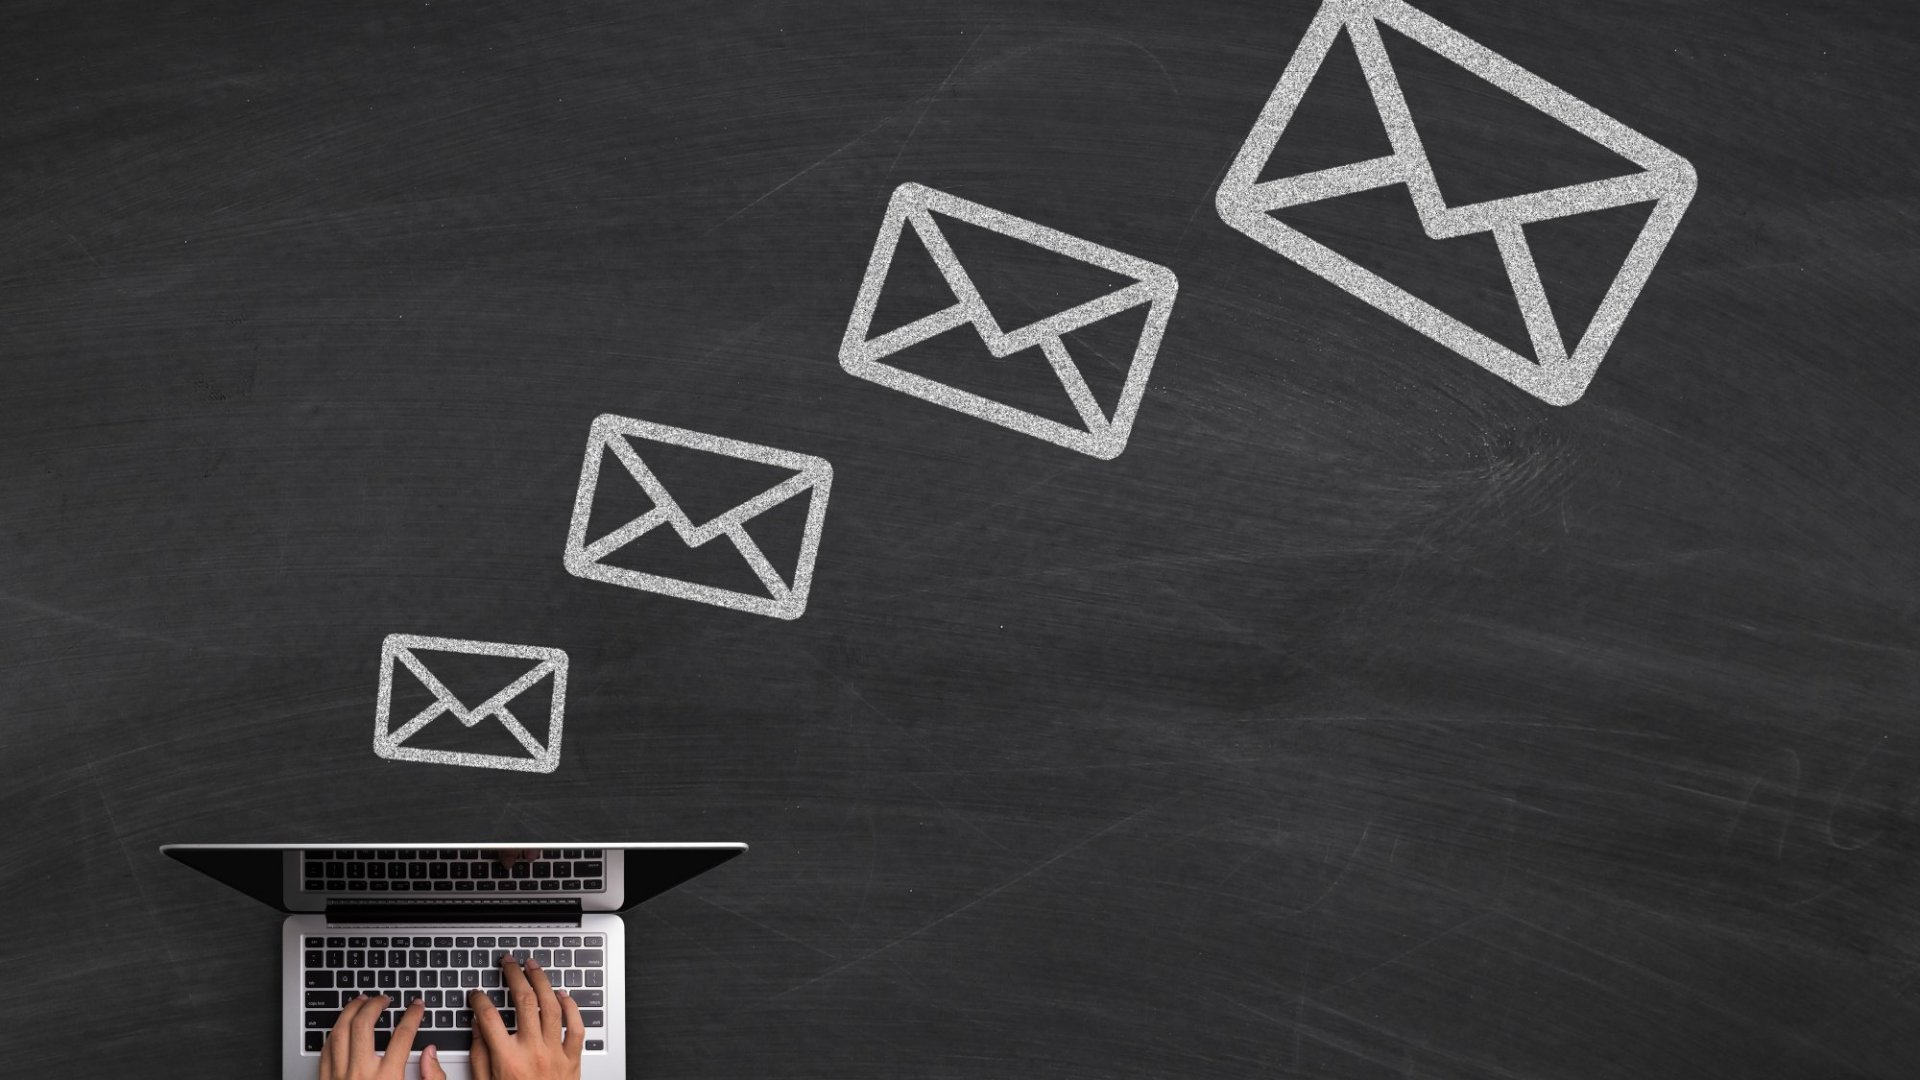 Email Is the Biggest Threat to Business, So Why Is Everyone Using It?